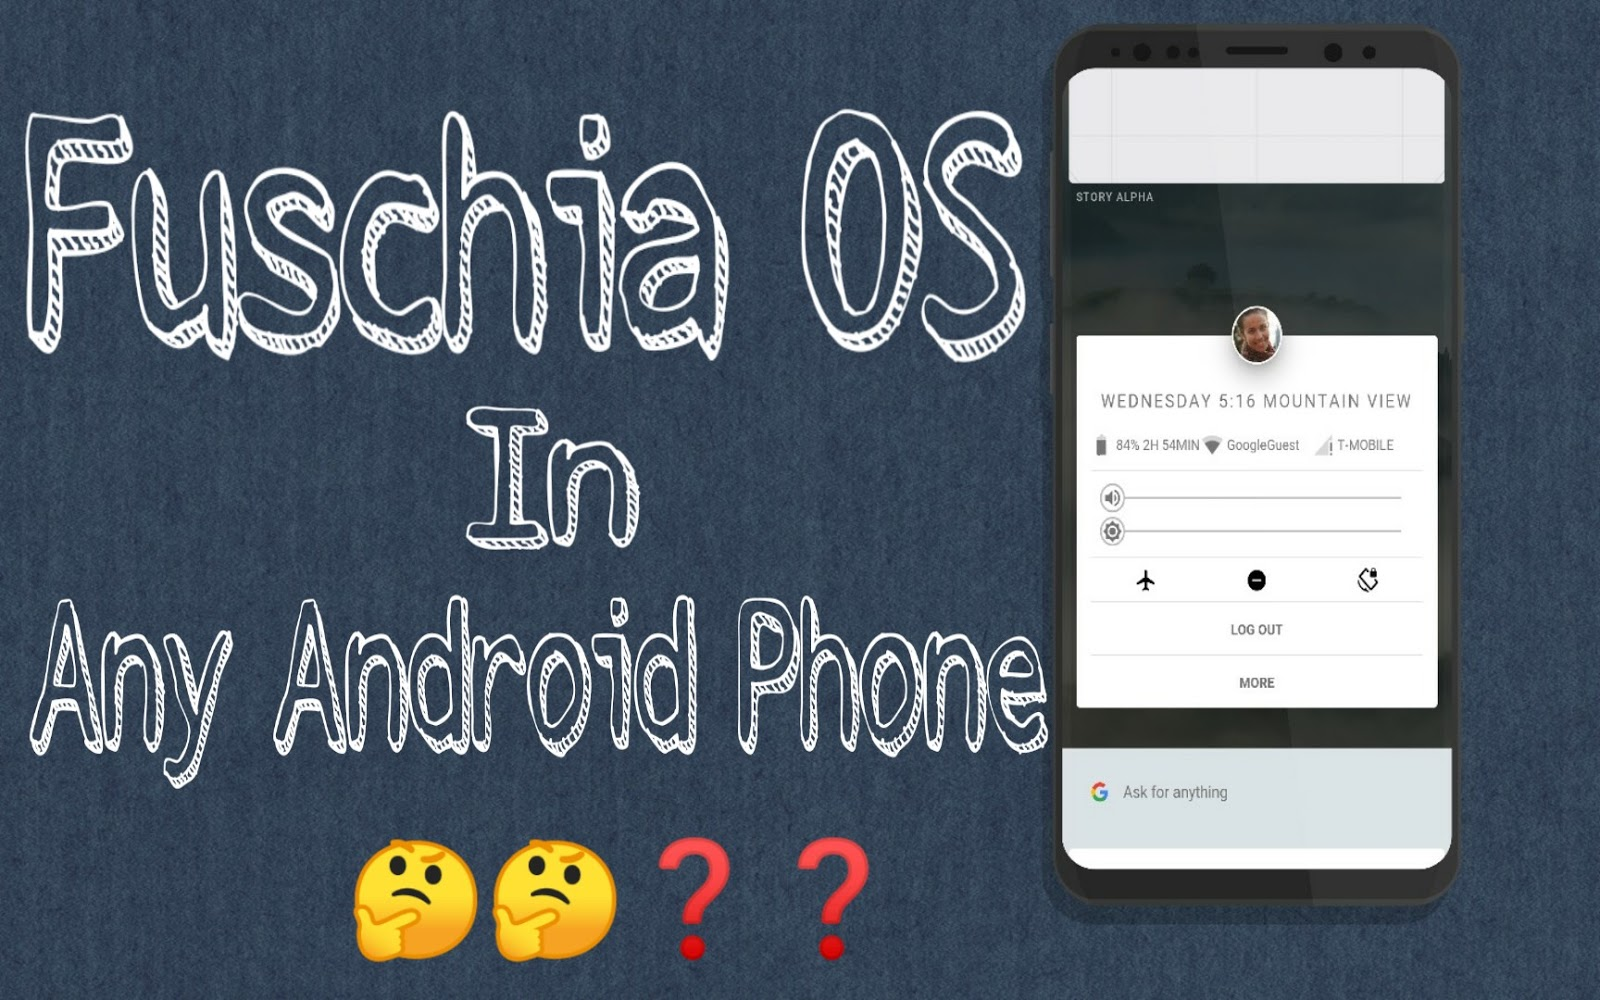 Google's Fuchsia OS: System UI is ported on Android as apk